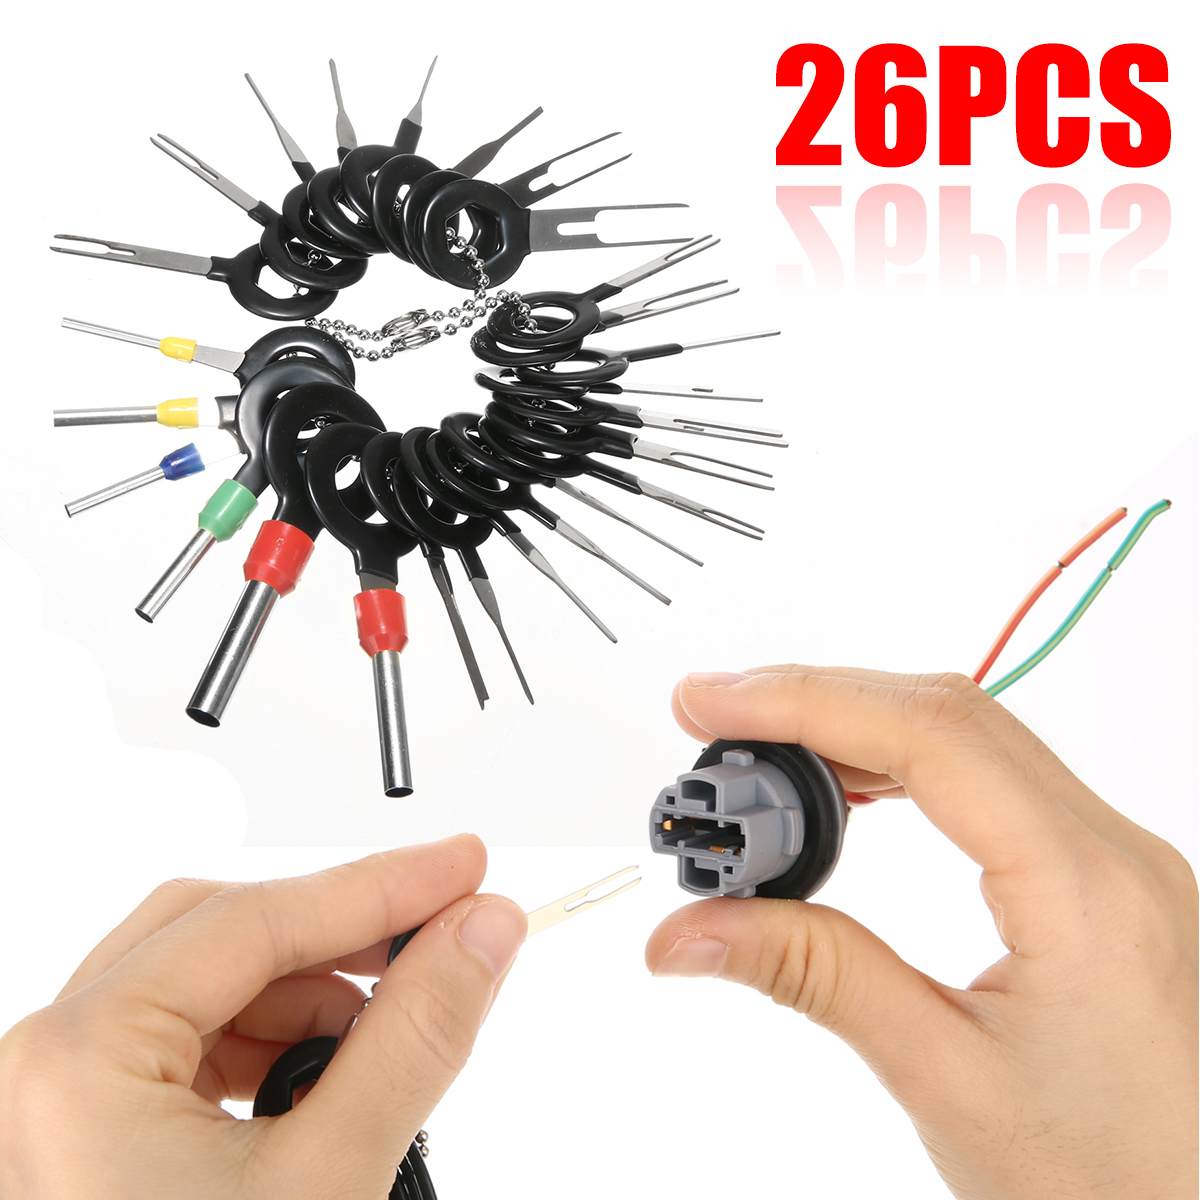 New Set 26pcs Car Terminal Removal Tool Wiring Connector Extractor Release Pin for Auto Repairing Hand Tools